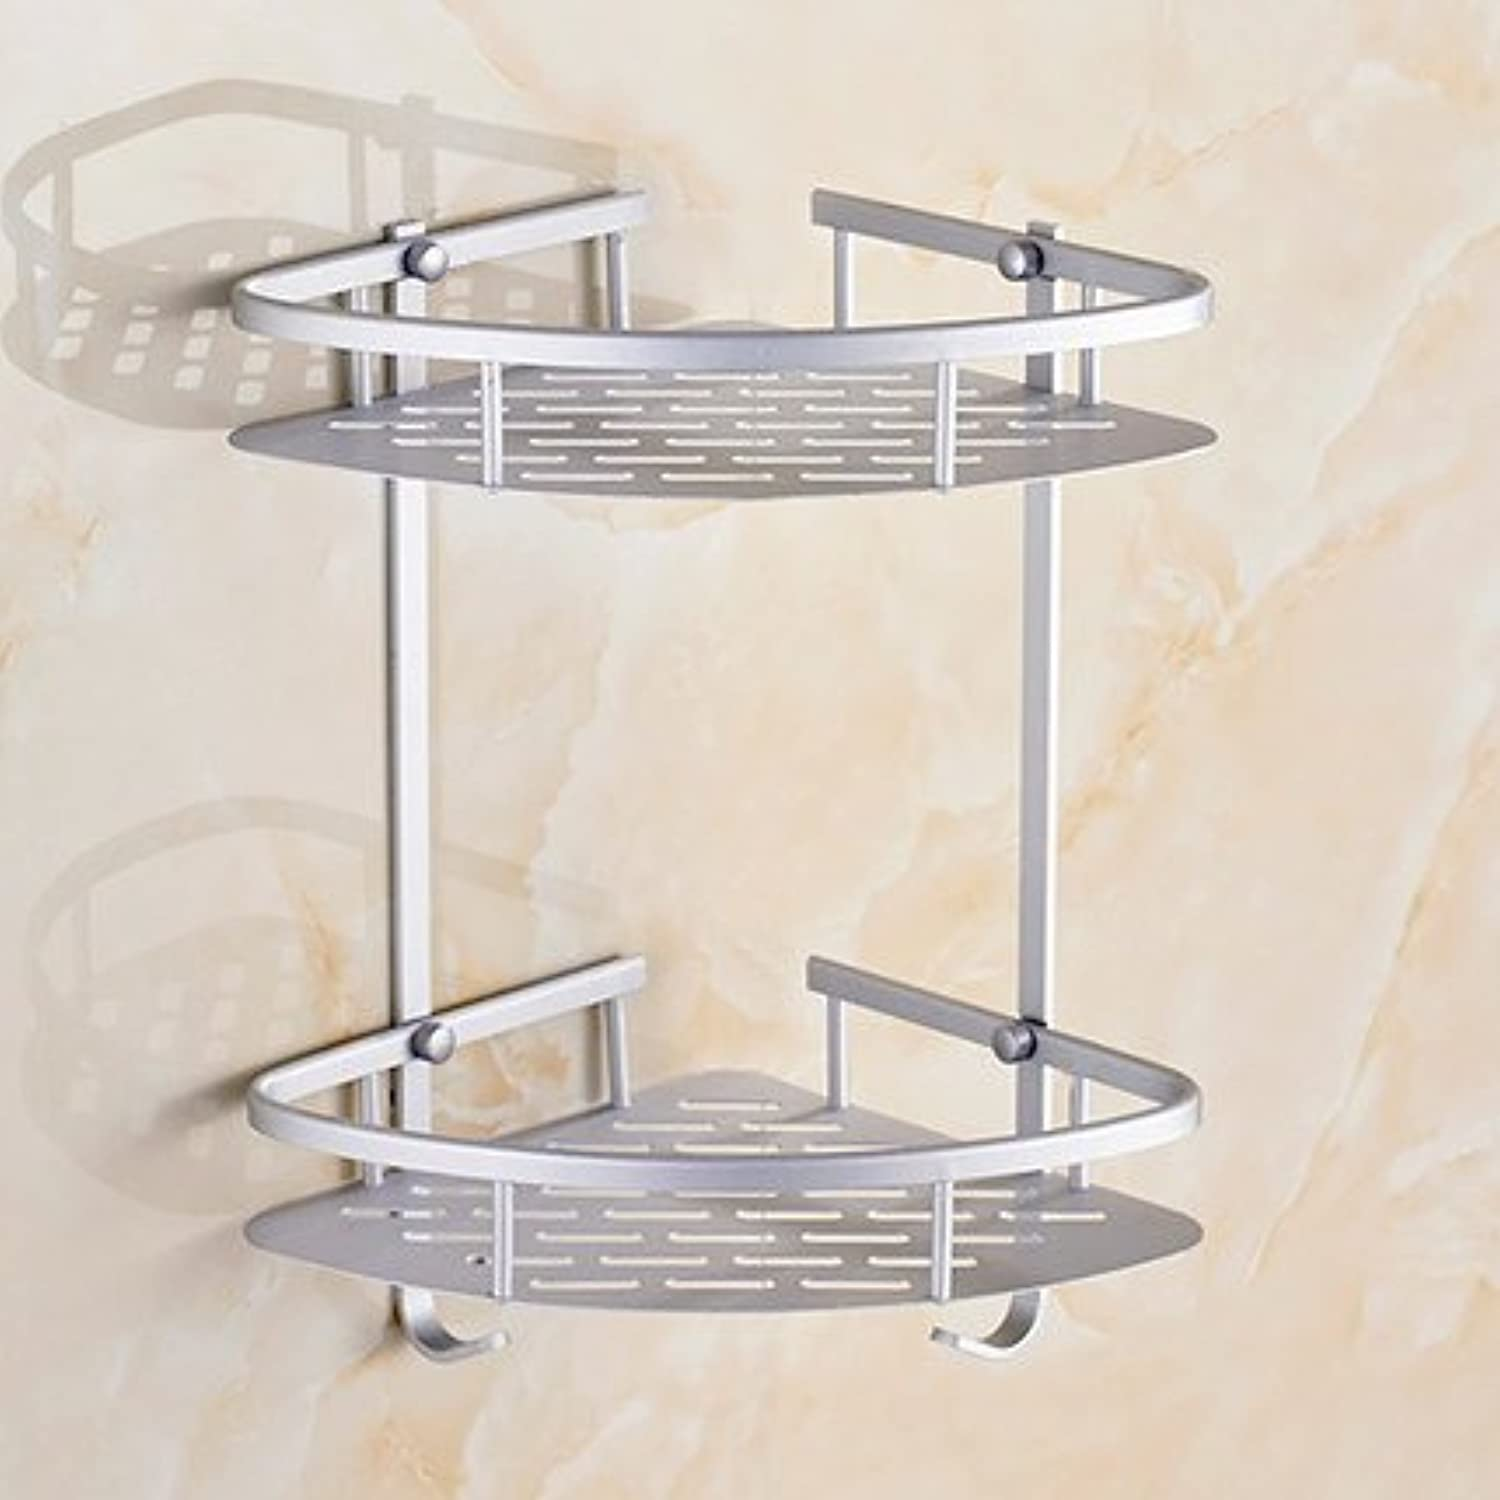 Space aluminum 53 two-tier bathroom shelf bathroom shelf